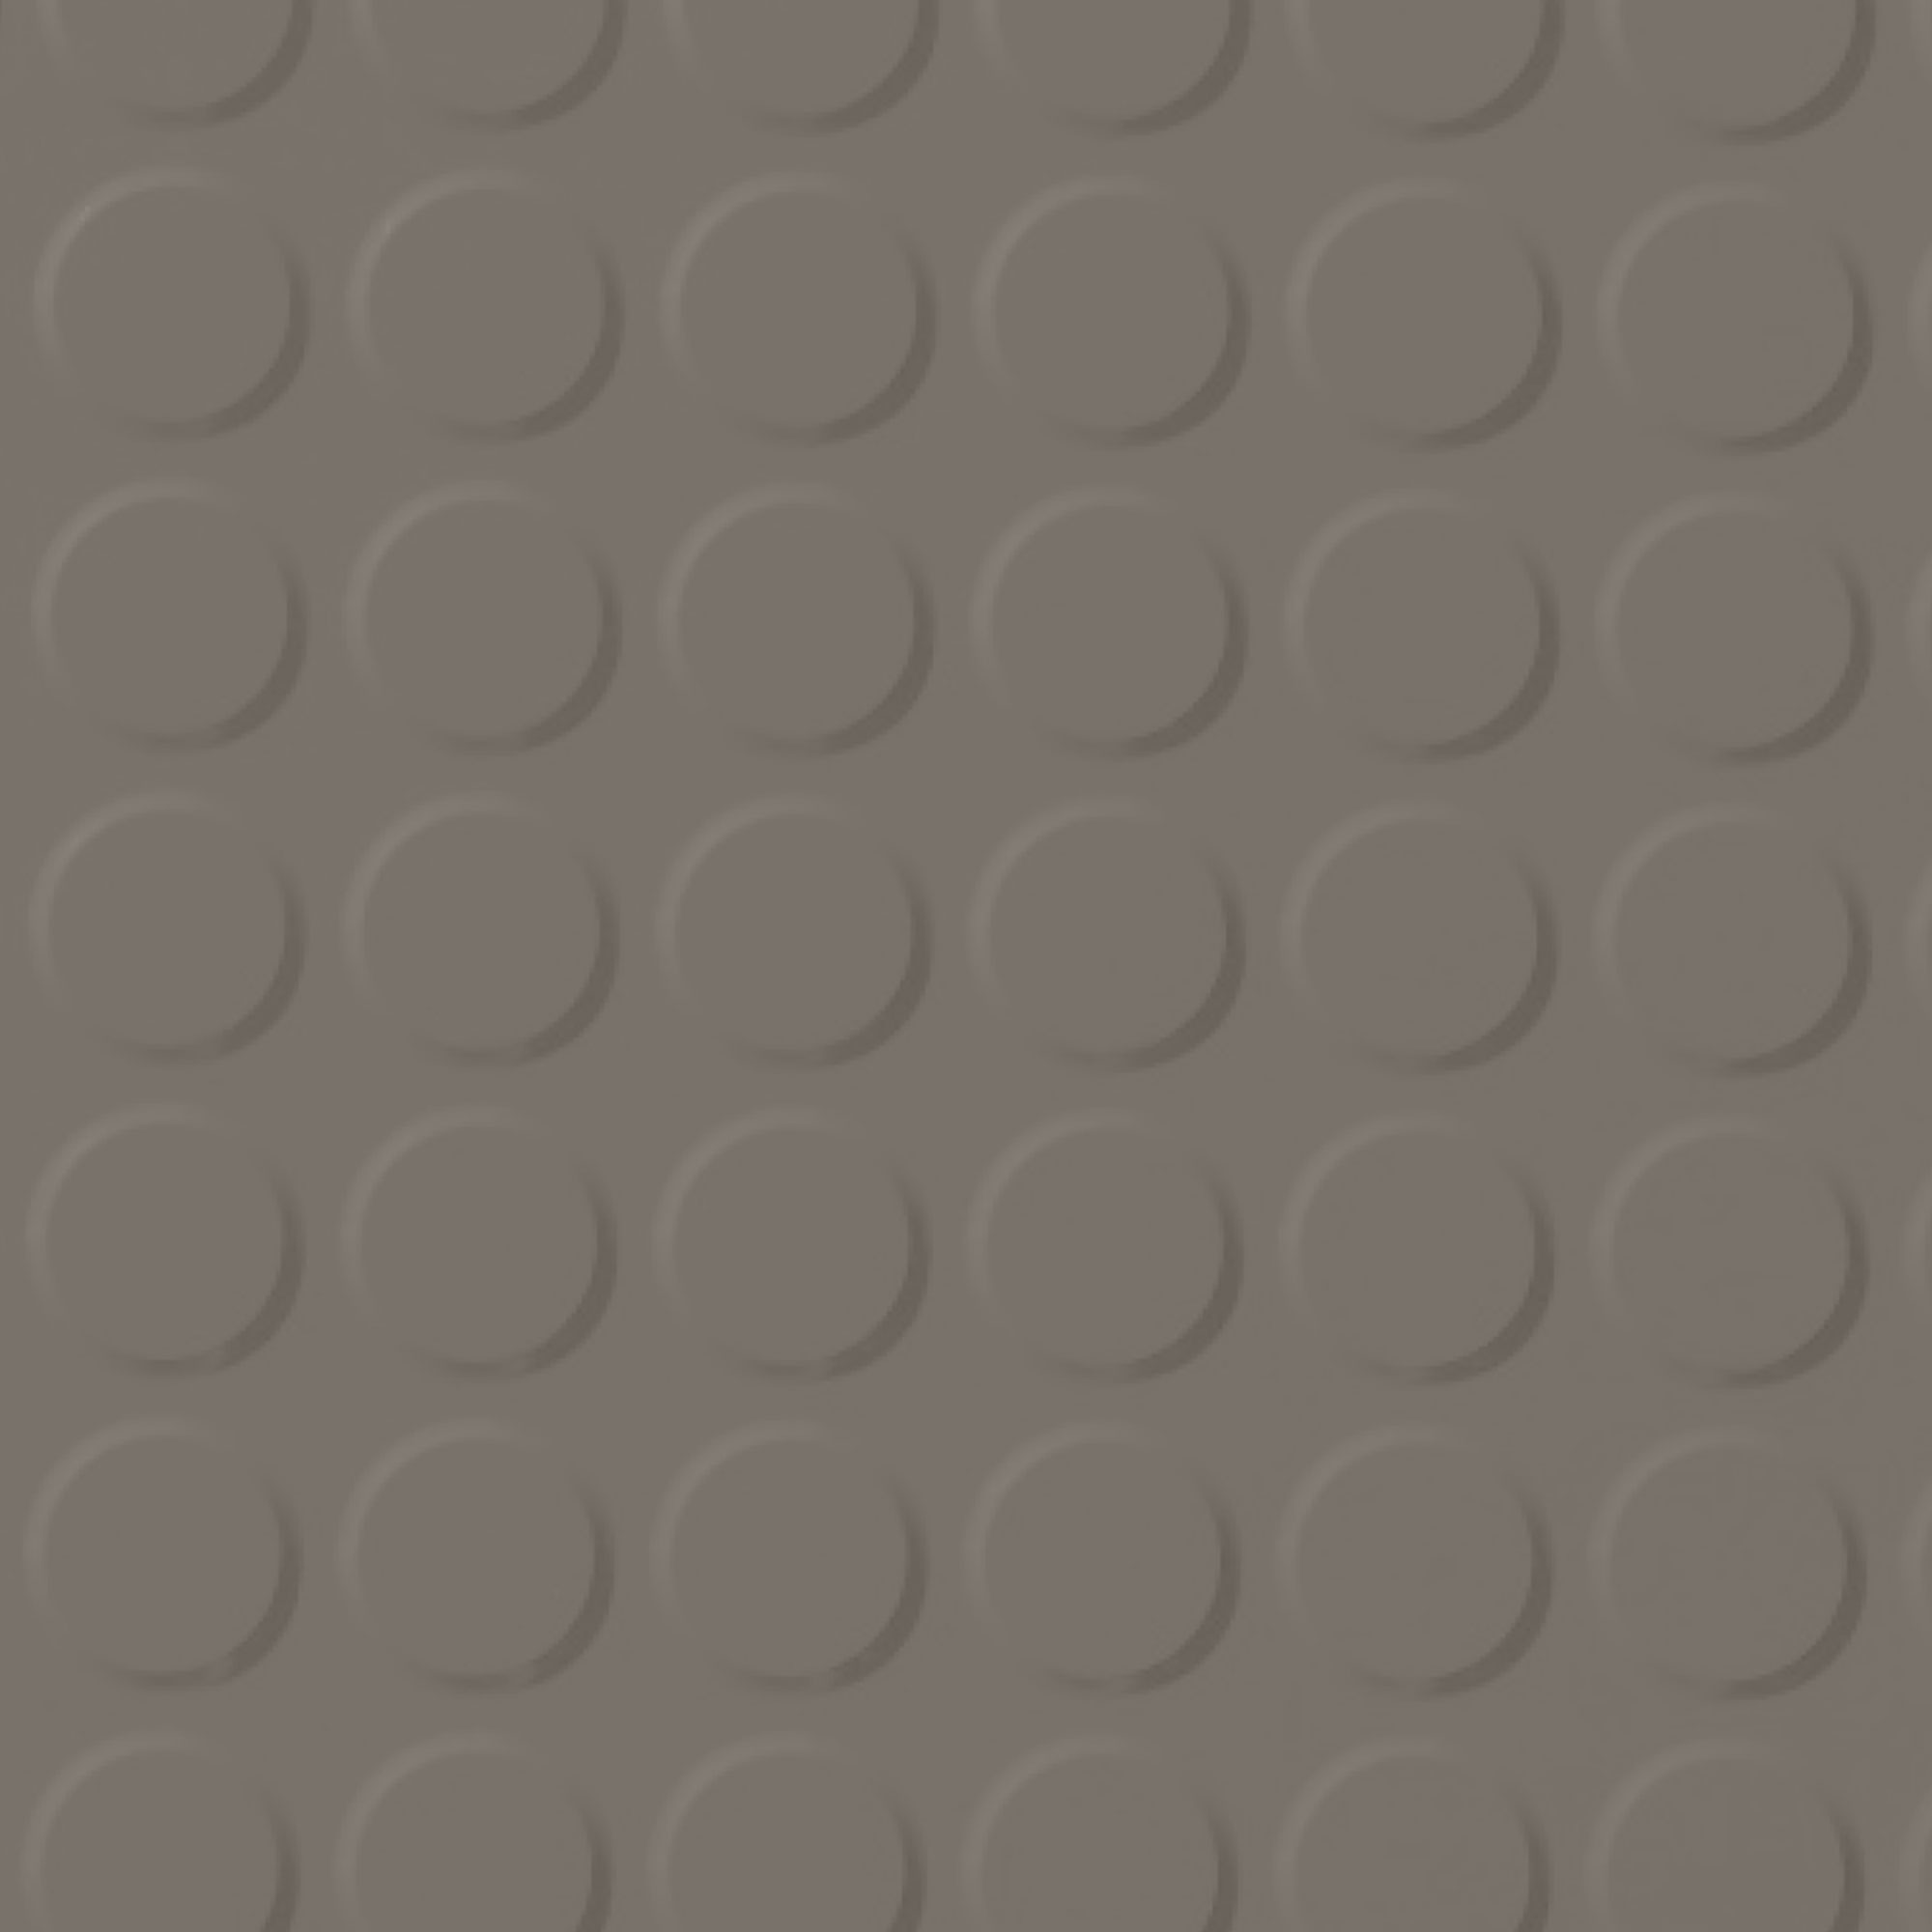 Roppe Rubber Tile 900 - Vantage Raised Circular Design (996) Lunar Dust 114